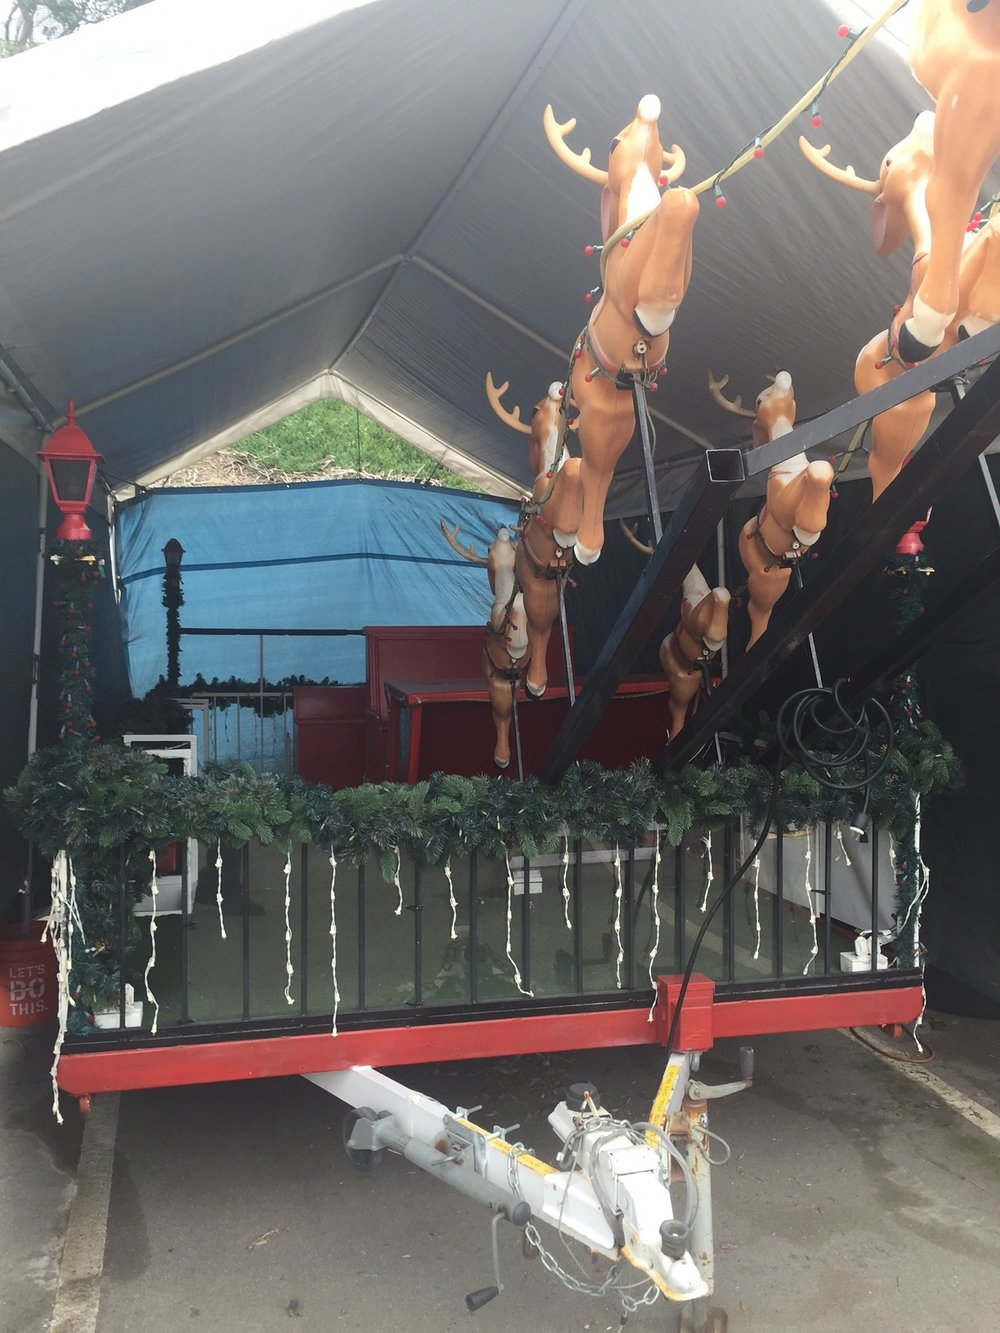 Manhattan Beach's Christmas float. Photo courtesy city of Downey